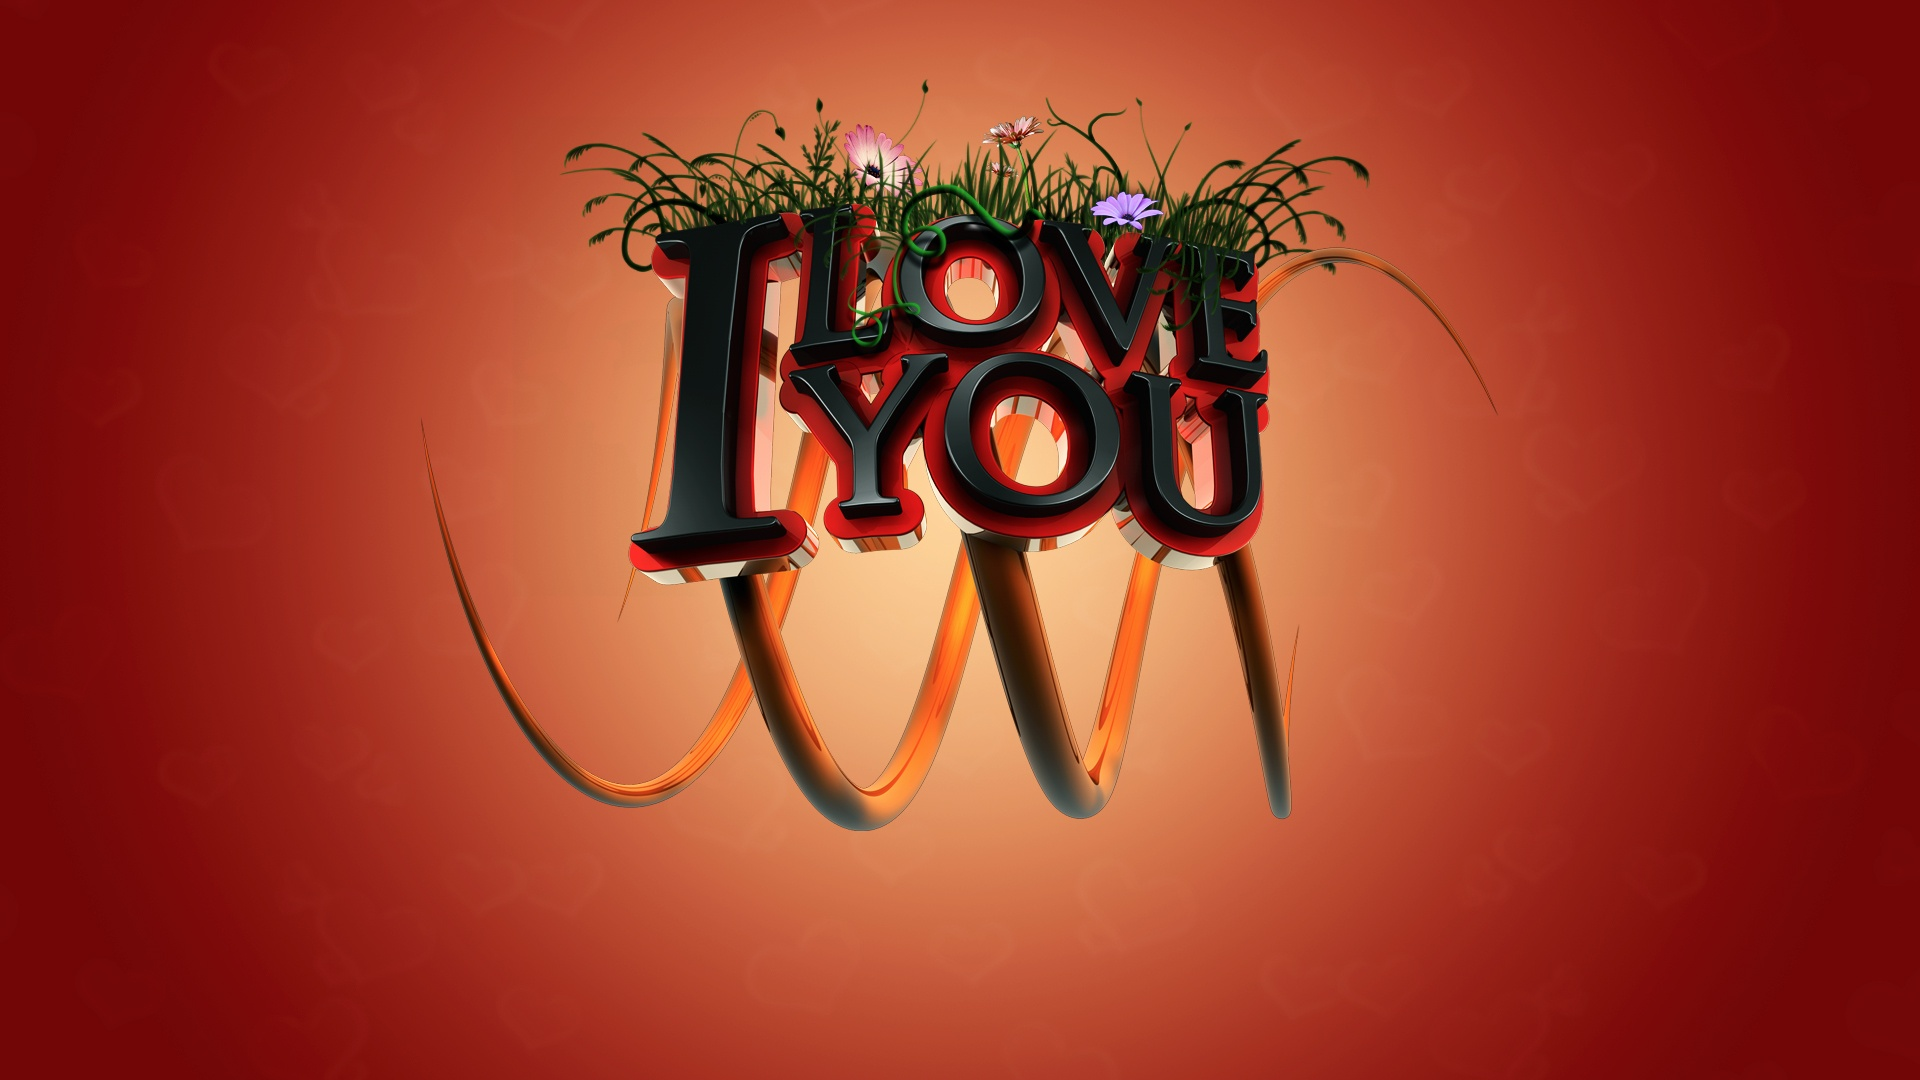 Wallpaper I Love You Photo : 1920x1080 I love you 3D desktop Pc and Mac wallpaper